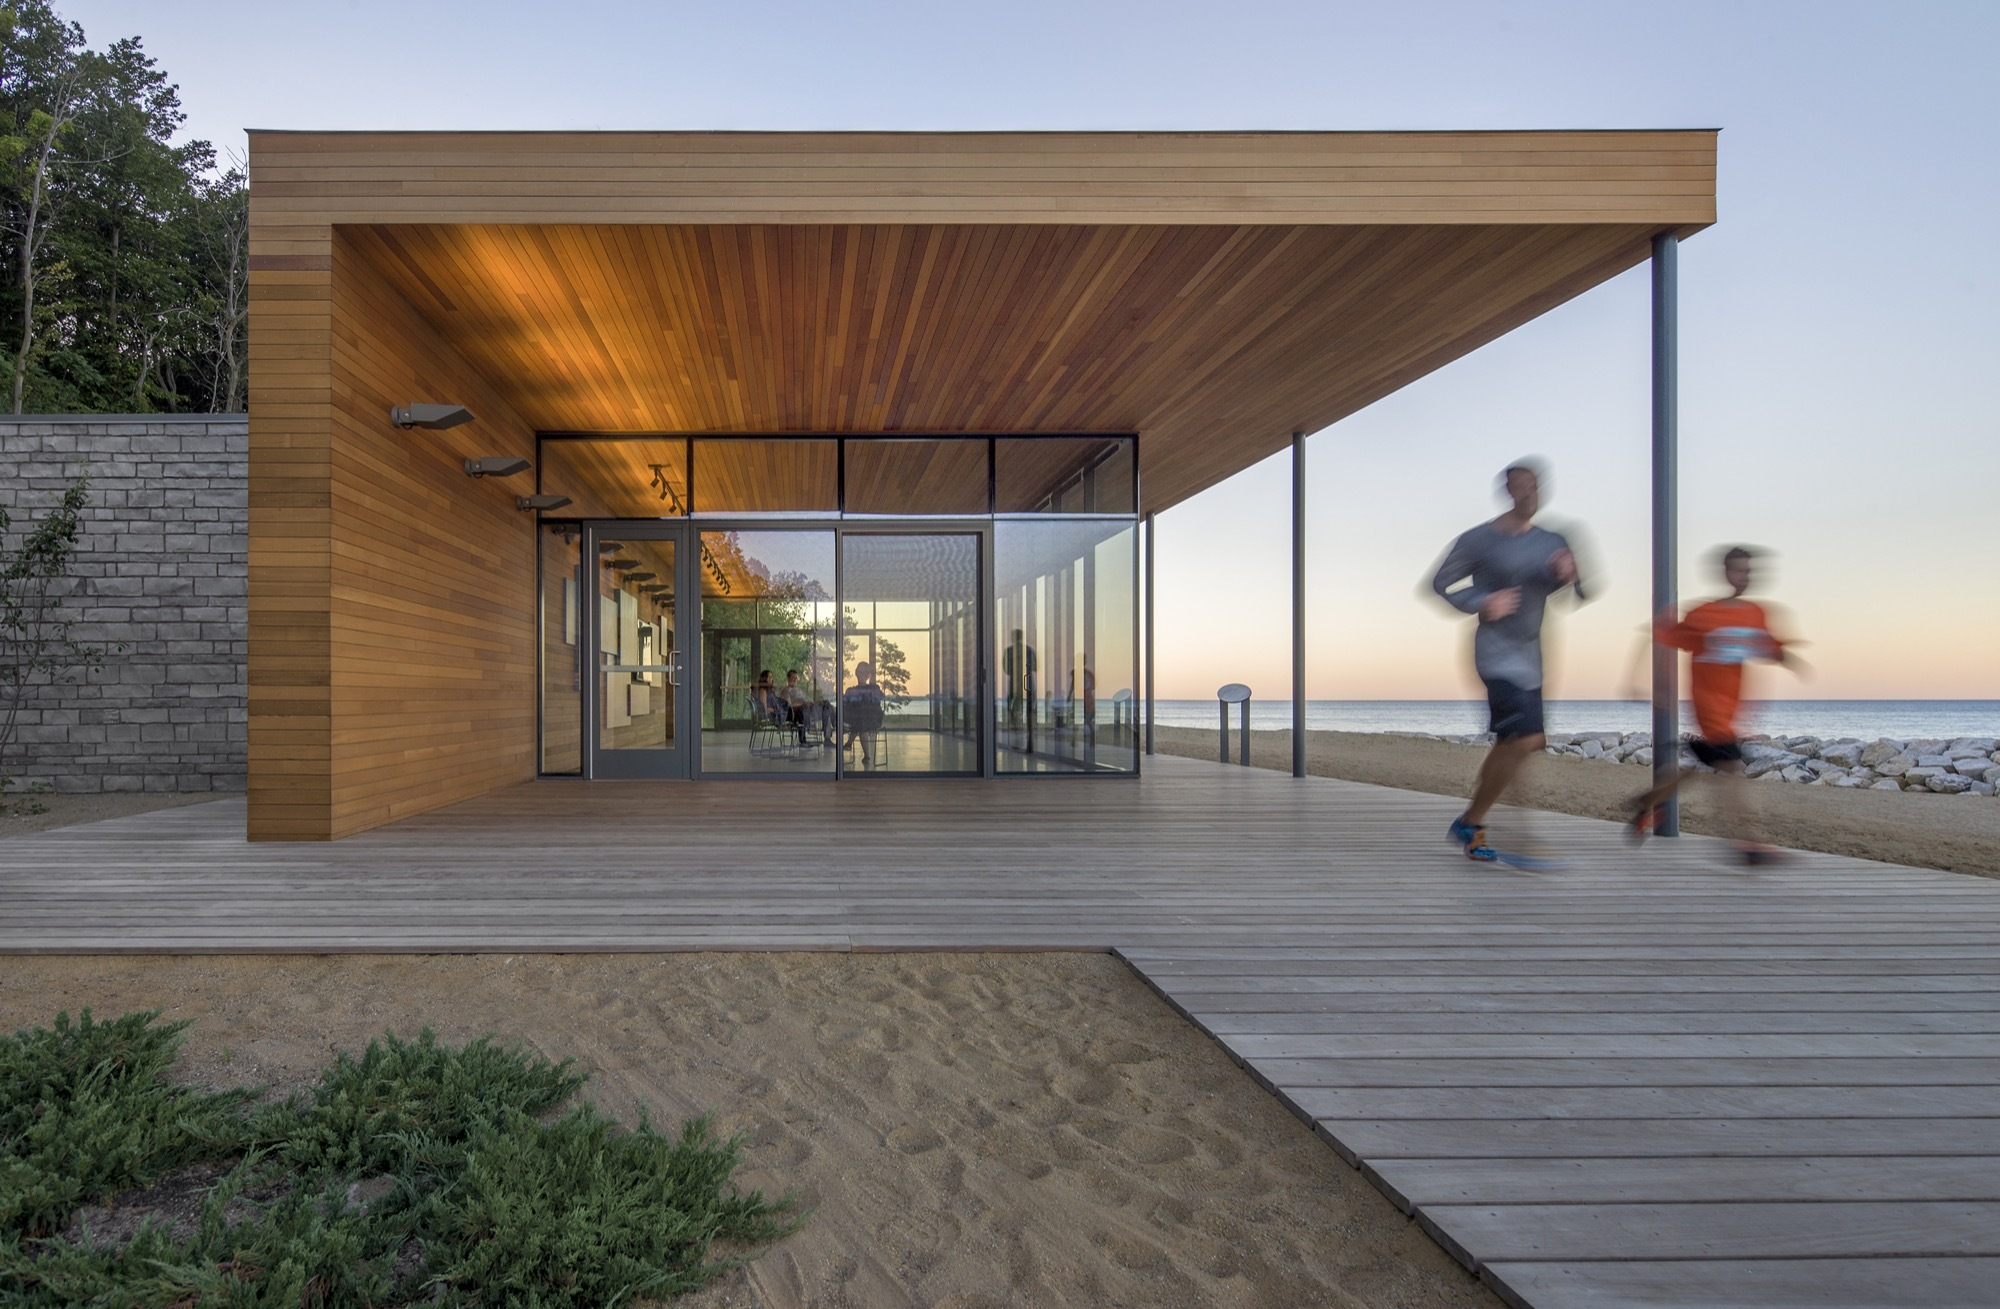 Rosewood park woodhouse tinucci architects archdaily for Wood house architecture